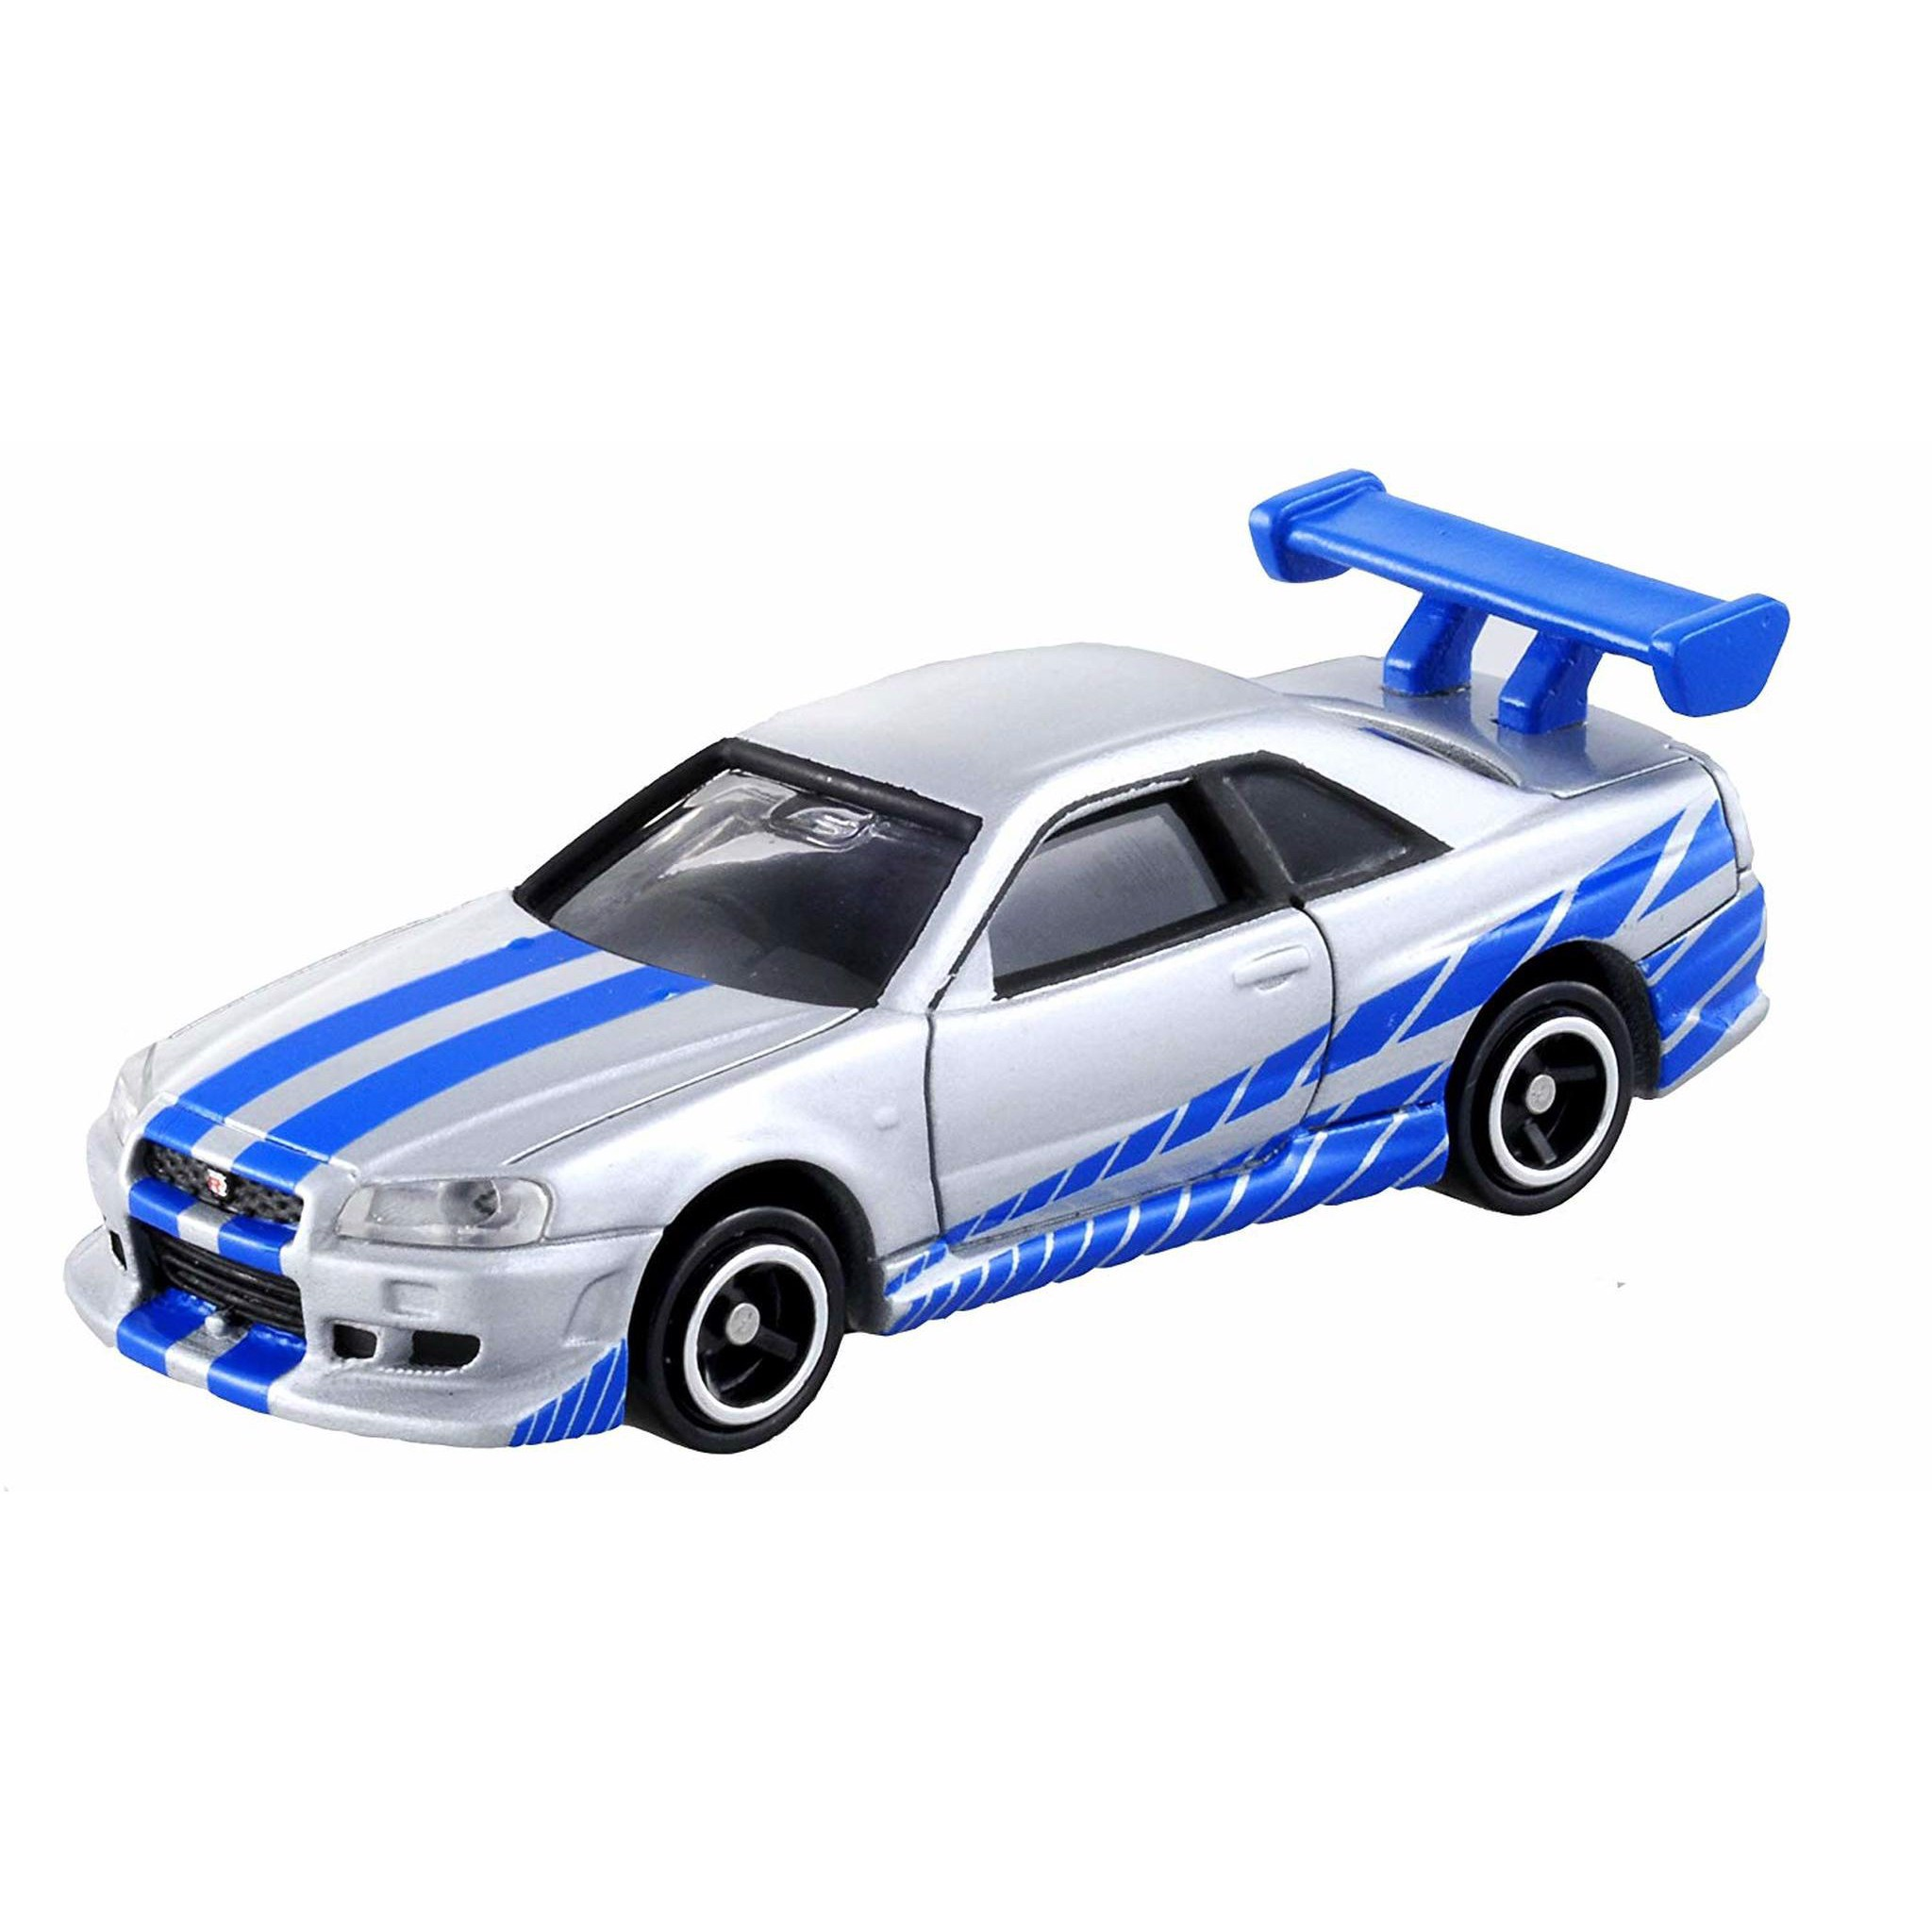 No.150 Tomica Dream Wild